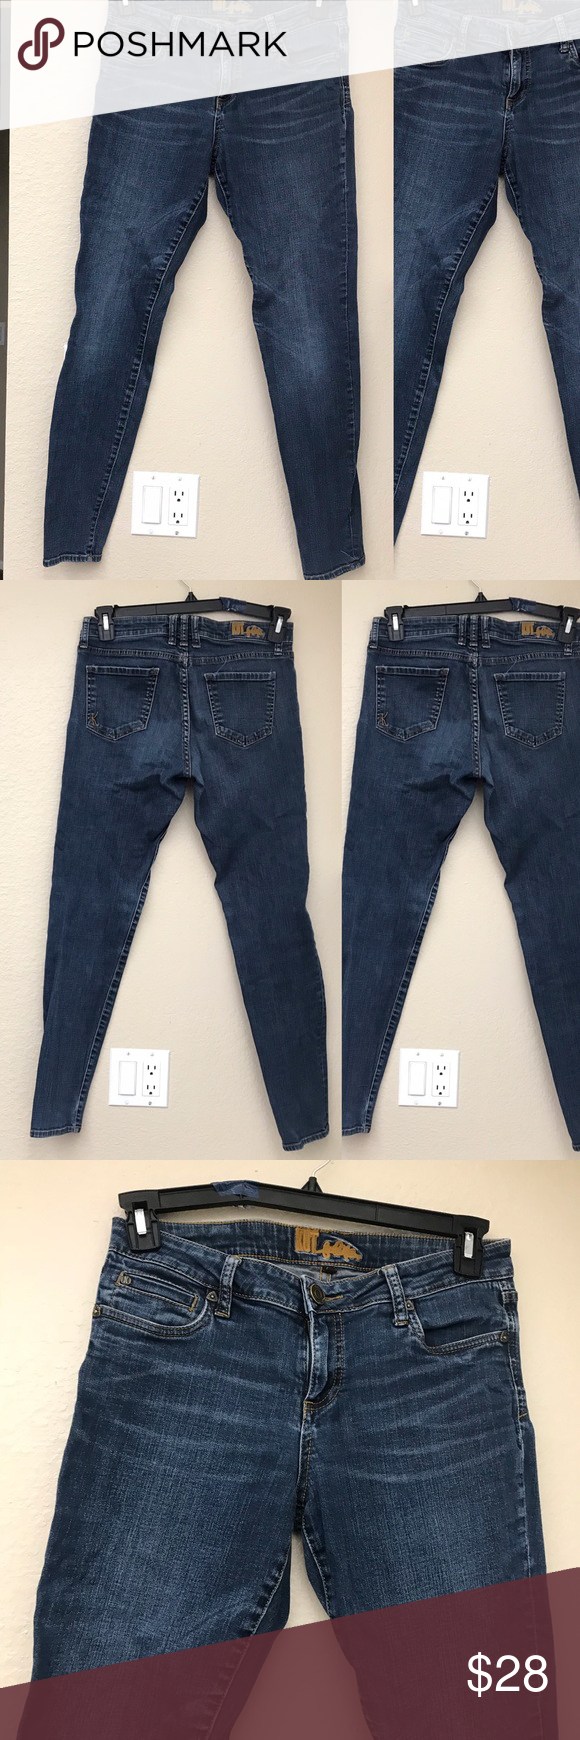 Kut From The Kloth Jeans Kut From The Kloth Jeans Size 6